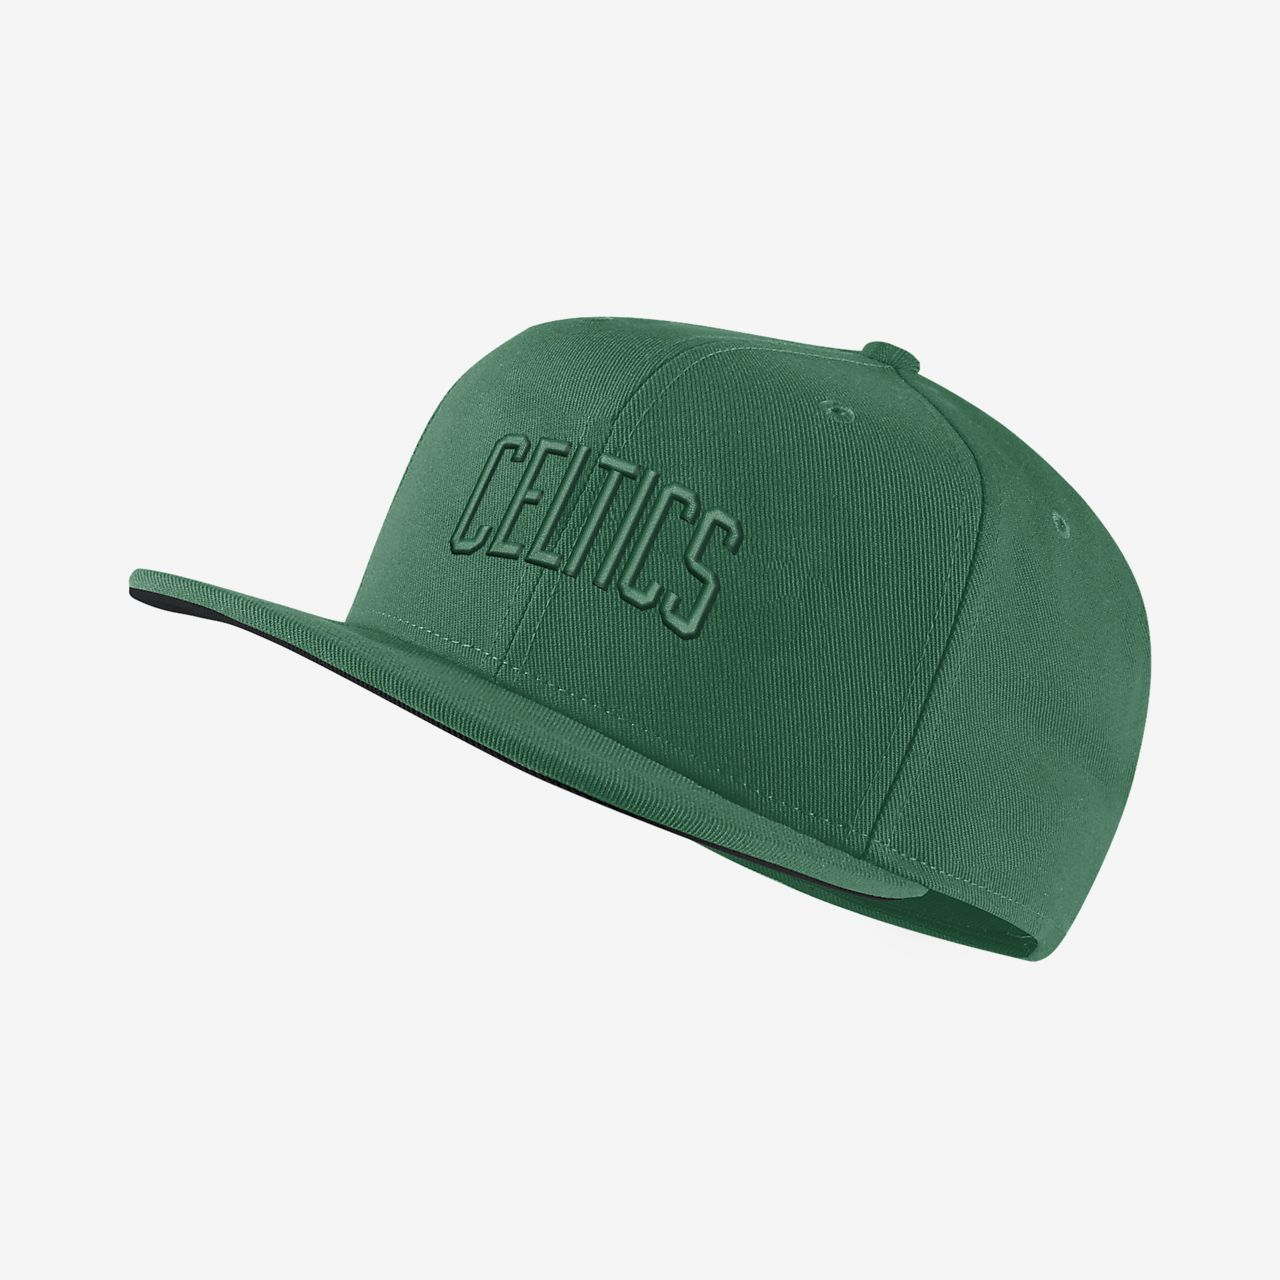 Cappello Boston Celtics Nike AeroBill - NBA